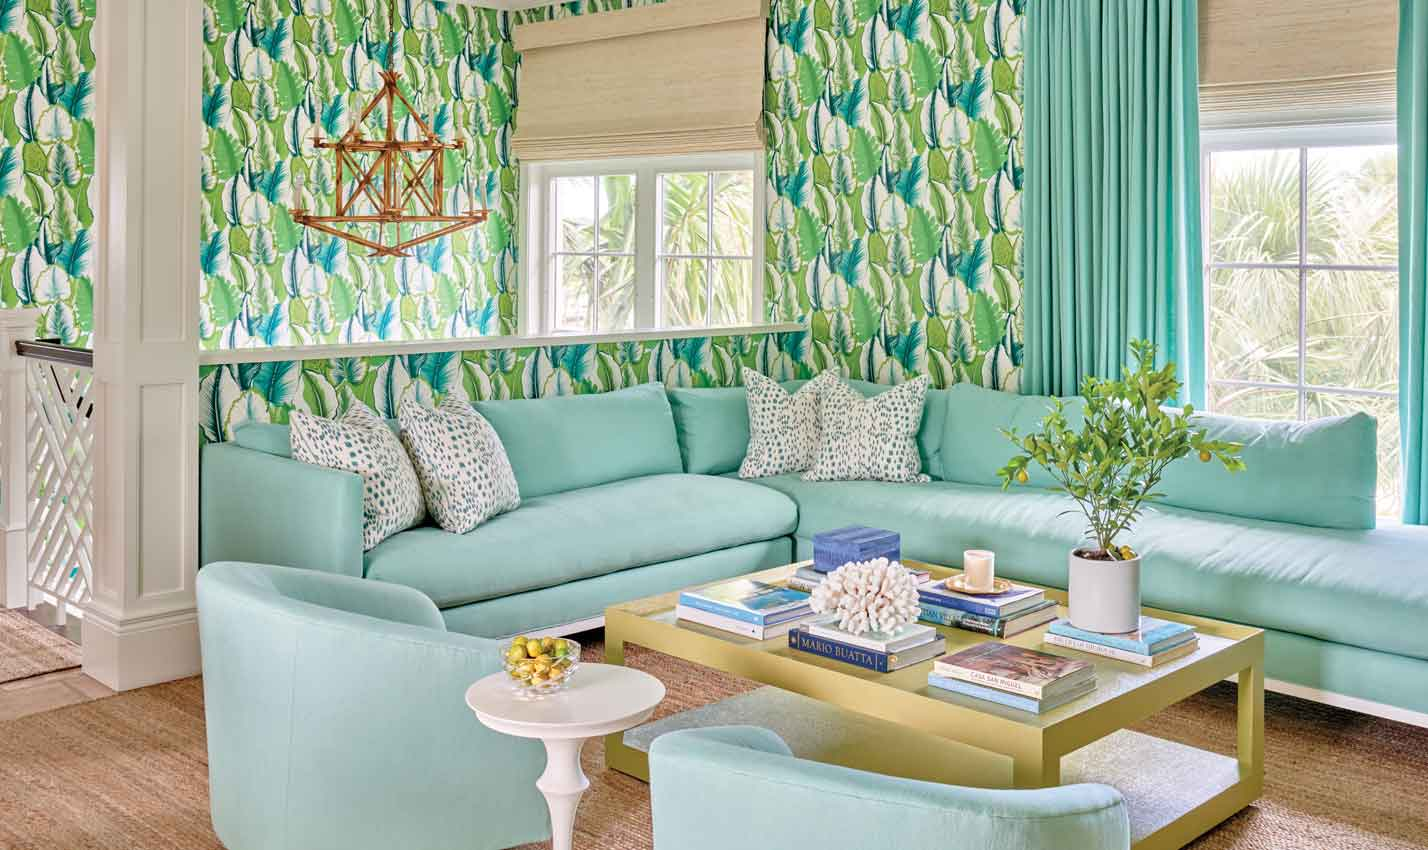 A tropical living room with green and blue printed wallpaper/Photography: J. Savage Gibson/Why stop at paint? This living space by designer Meg Braff features Manuel Canovas' Malfa wallpaper with a cheerful green and blue leaf motif.